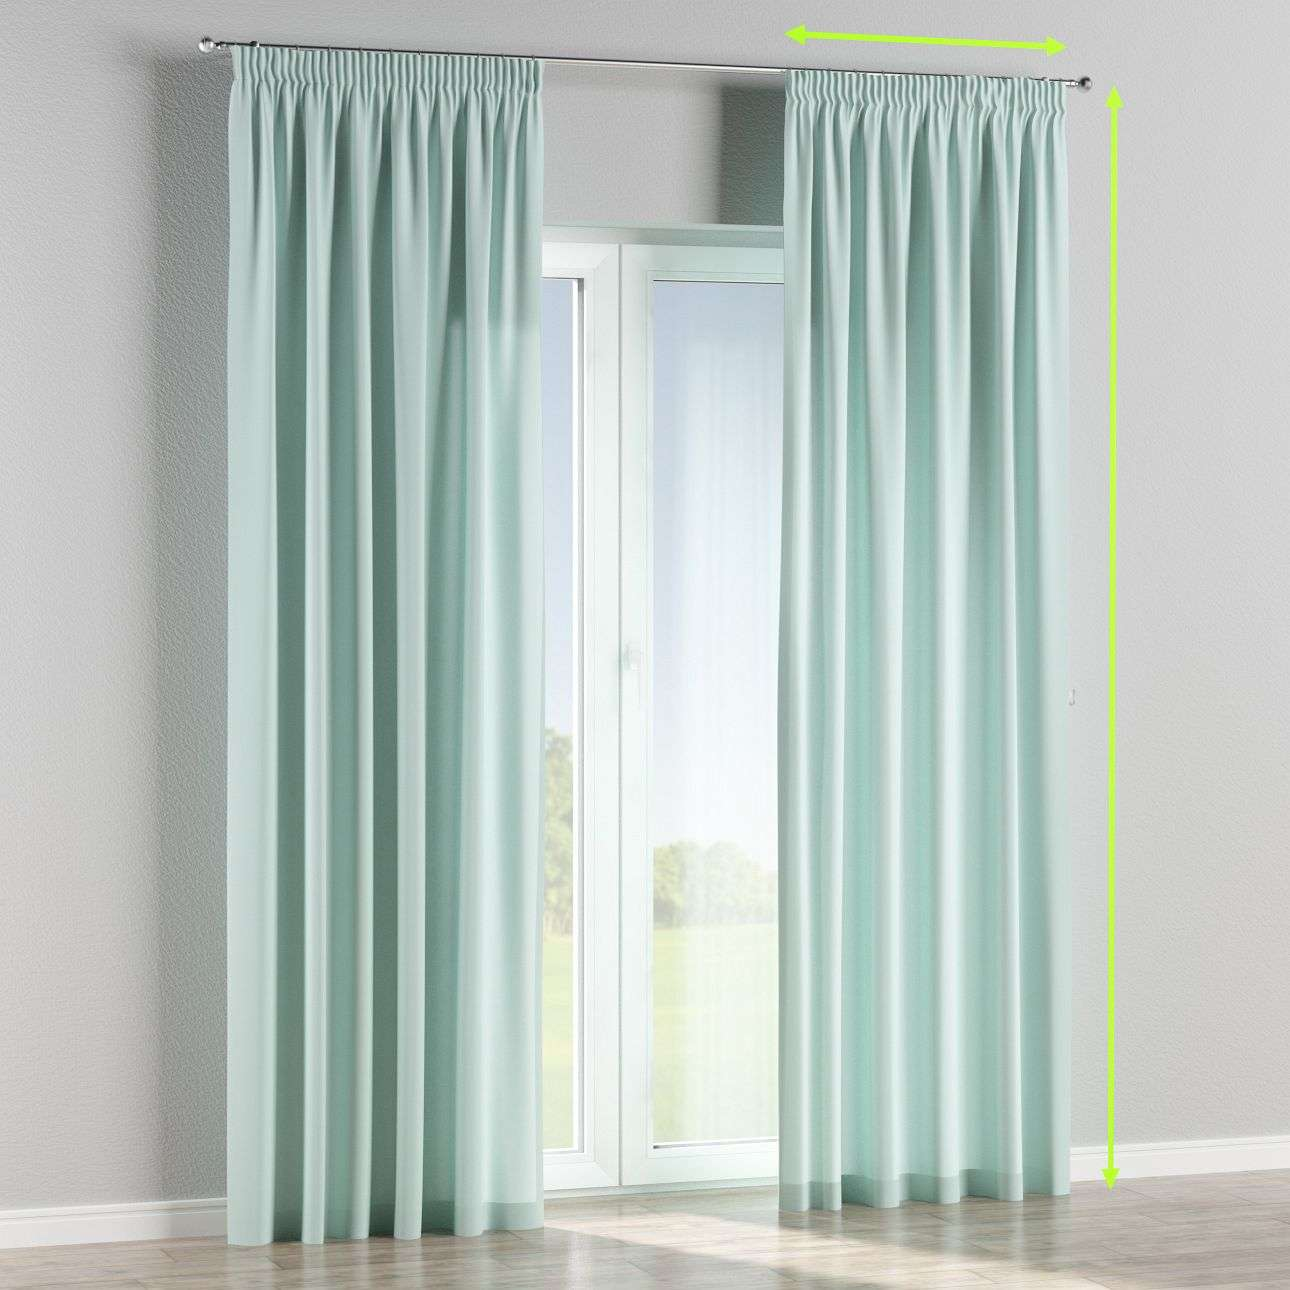 Pencil pleat curtains in collection Cotton Panama, fabric: 702-10